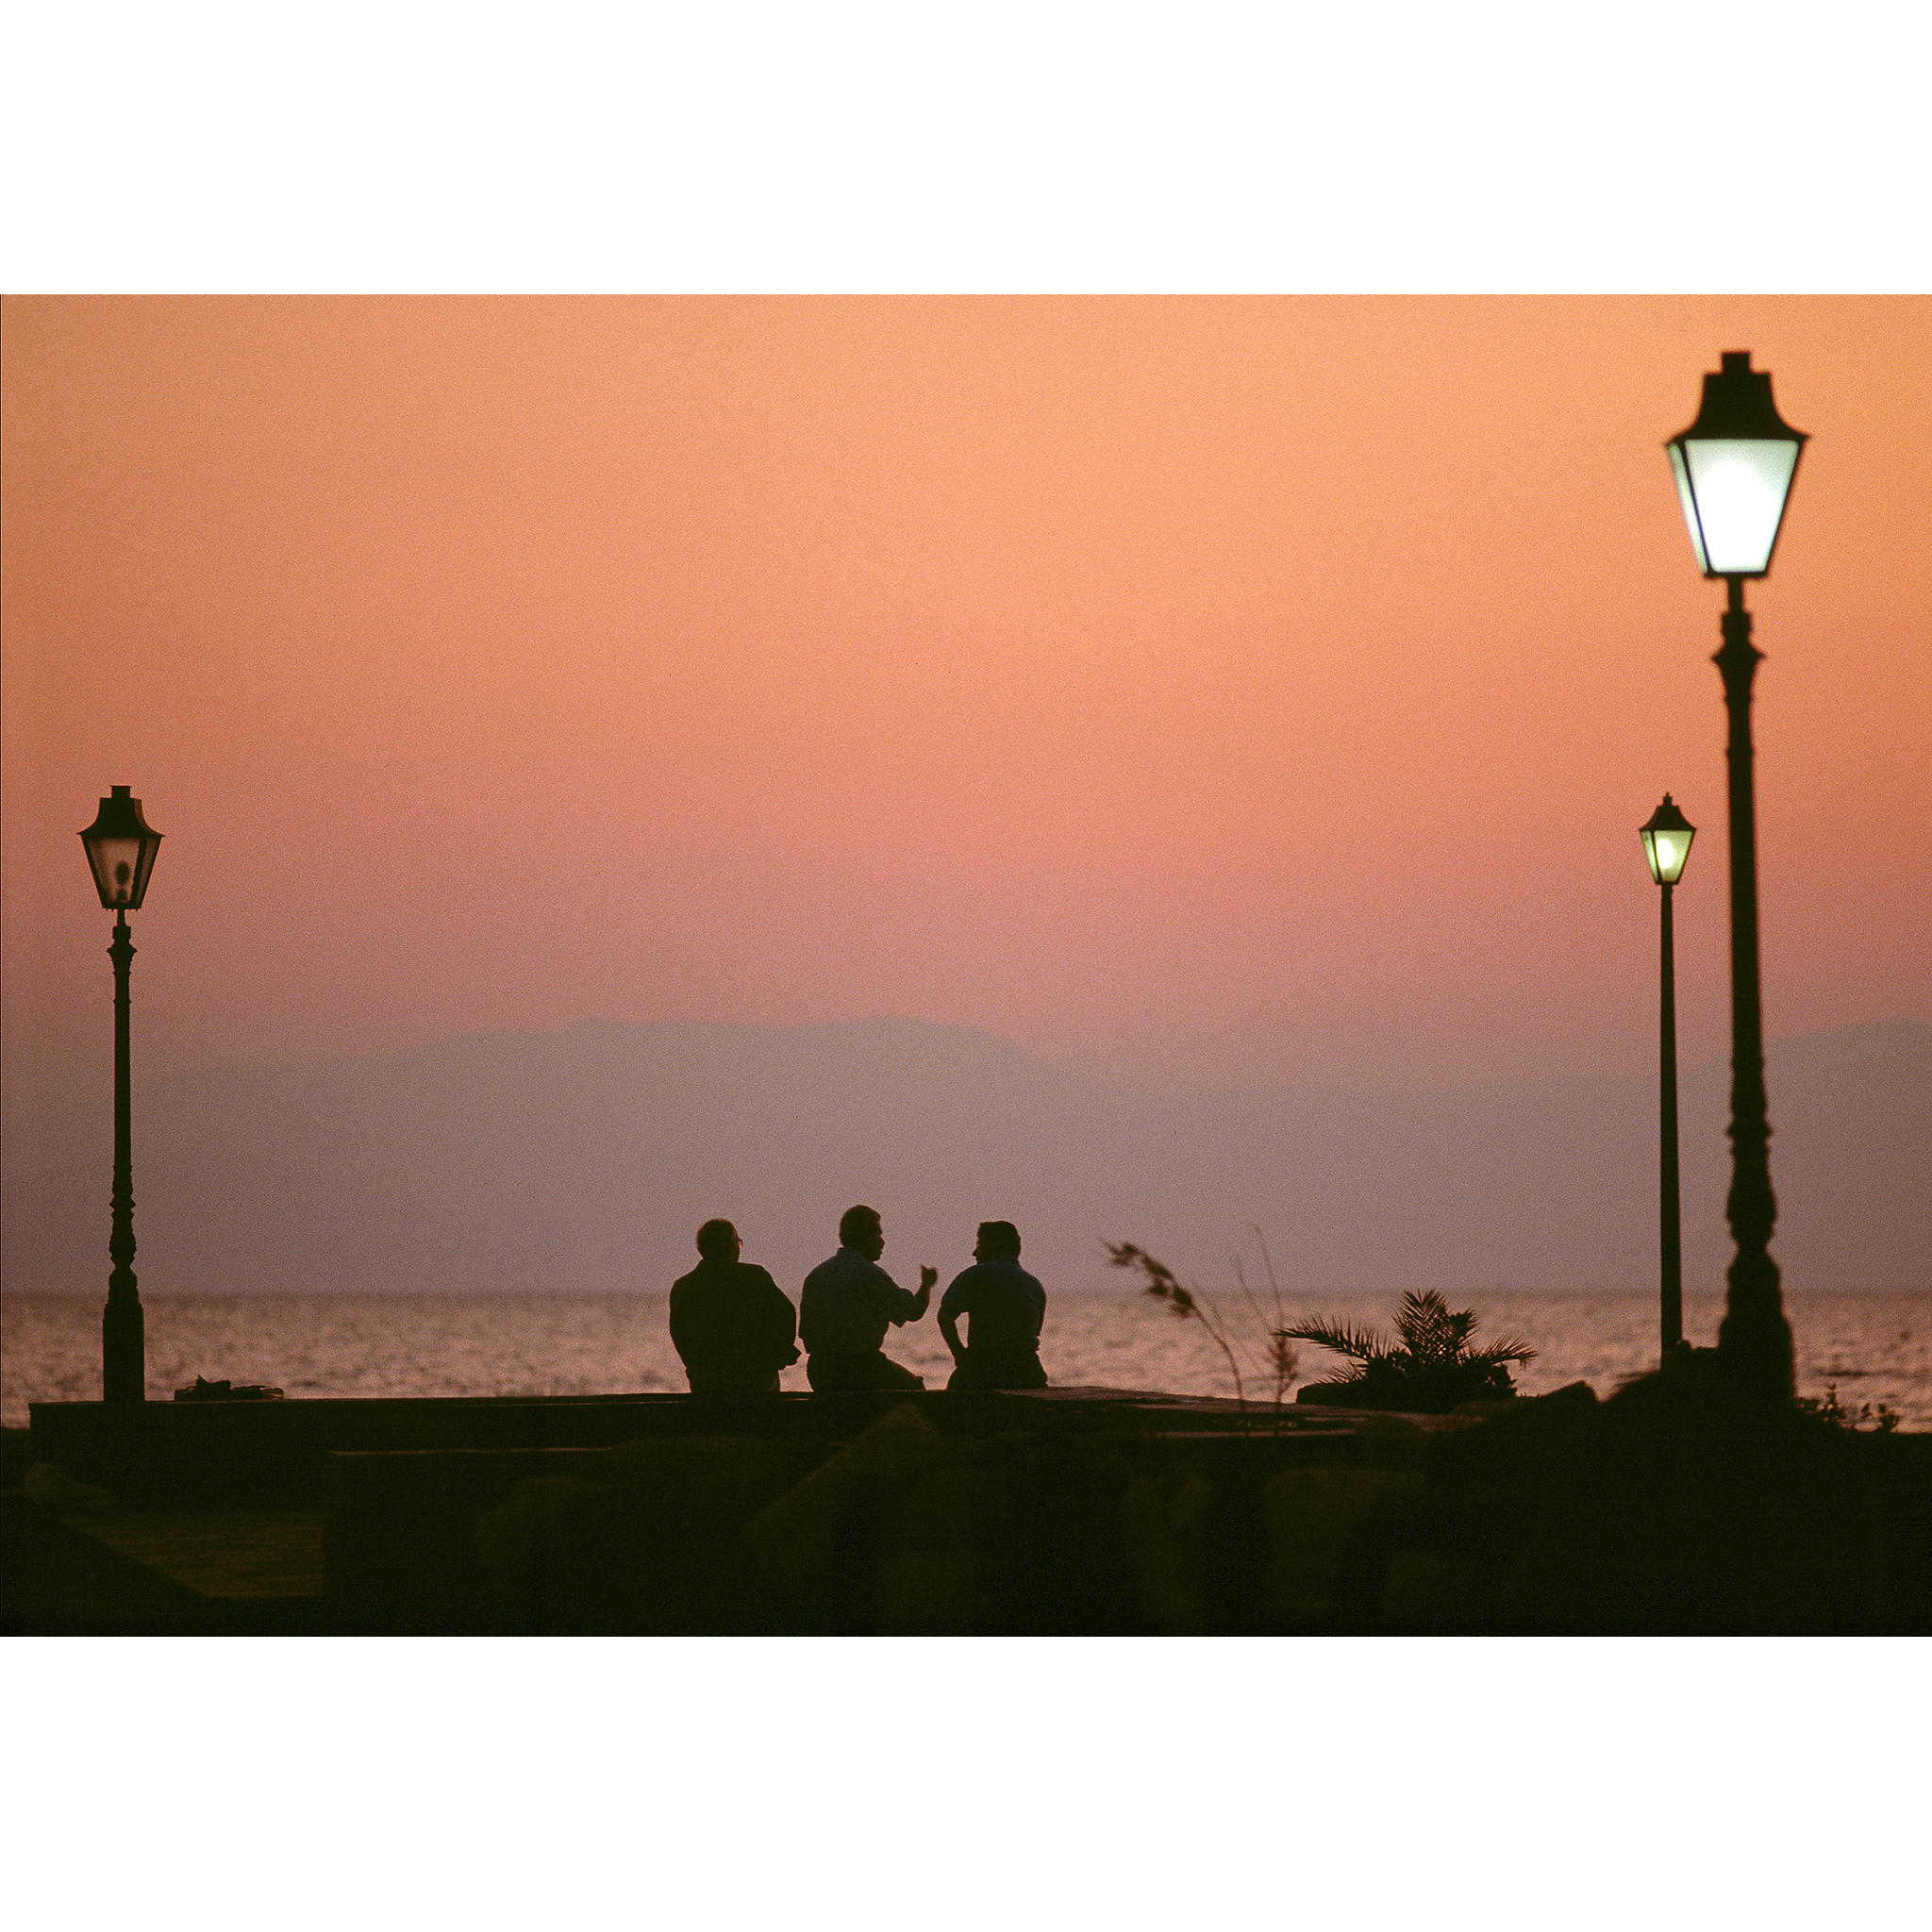 Greek men at sunset overlooking water photograph